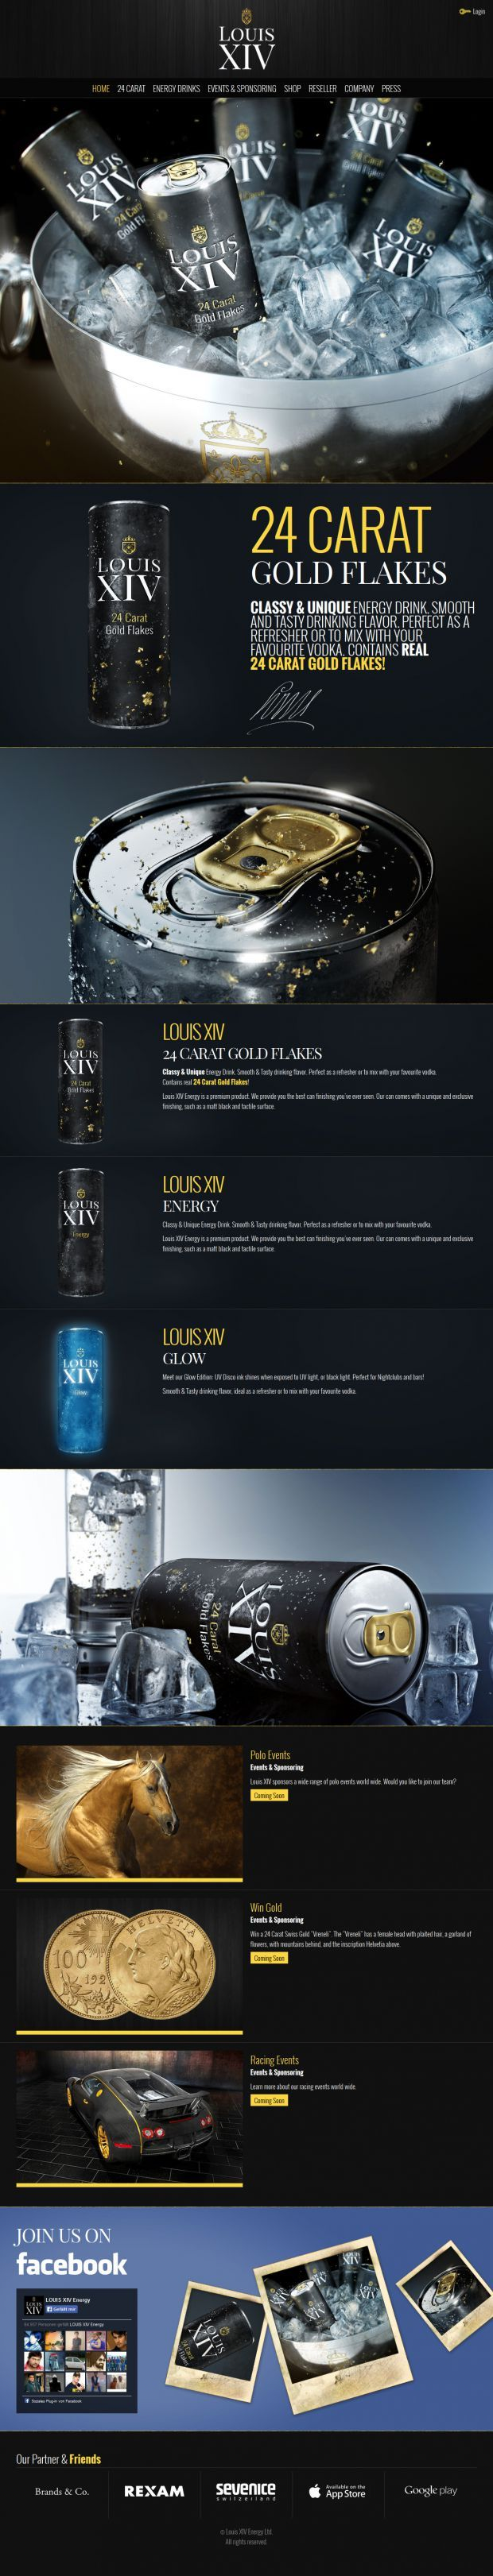 Louis XIV - Classy and Unique Energy Drink html5, Responsive Design, Website, Company, Drink